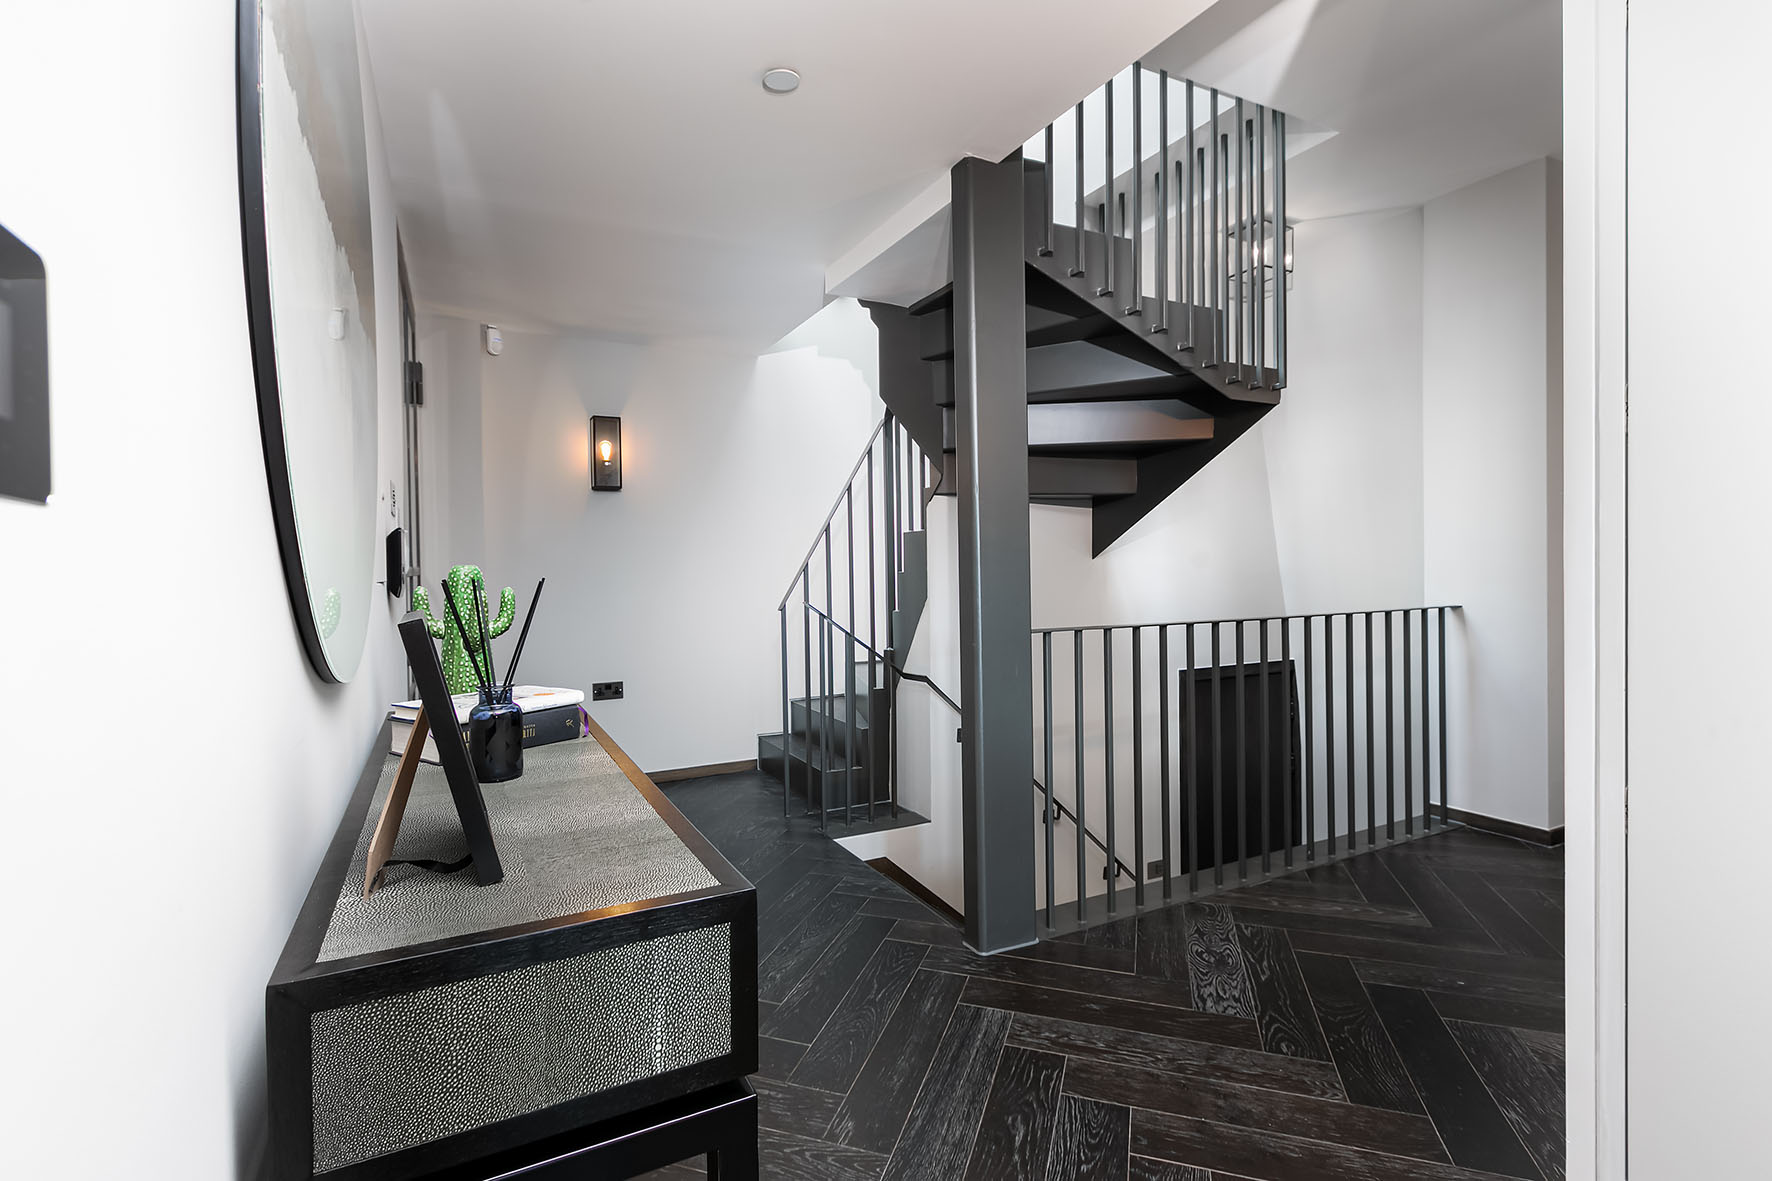 Lovelydays luxury service apartment rental - London - Soho - Great Marlborough St. IX - Lovelysuite - 2 bedrooms - 2 bathrooms - Hallway - 5 star apartment in london - b4f5b2965408 - Lovelydays